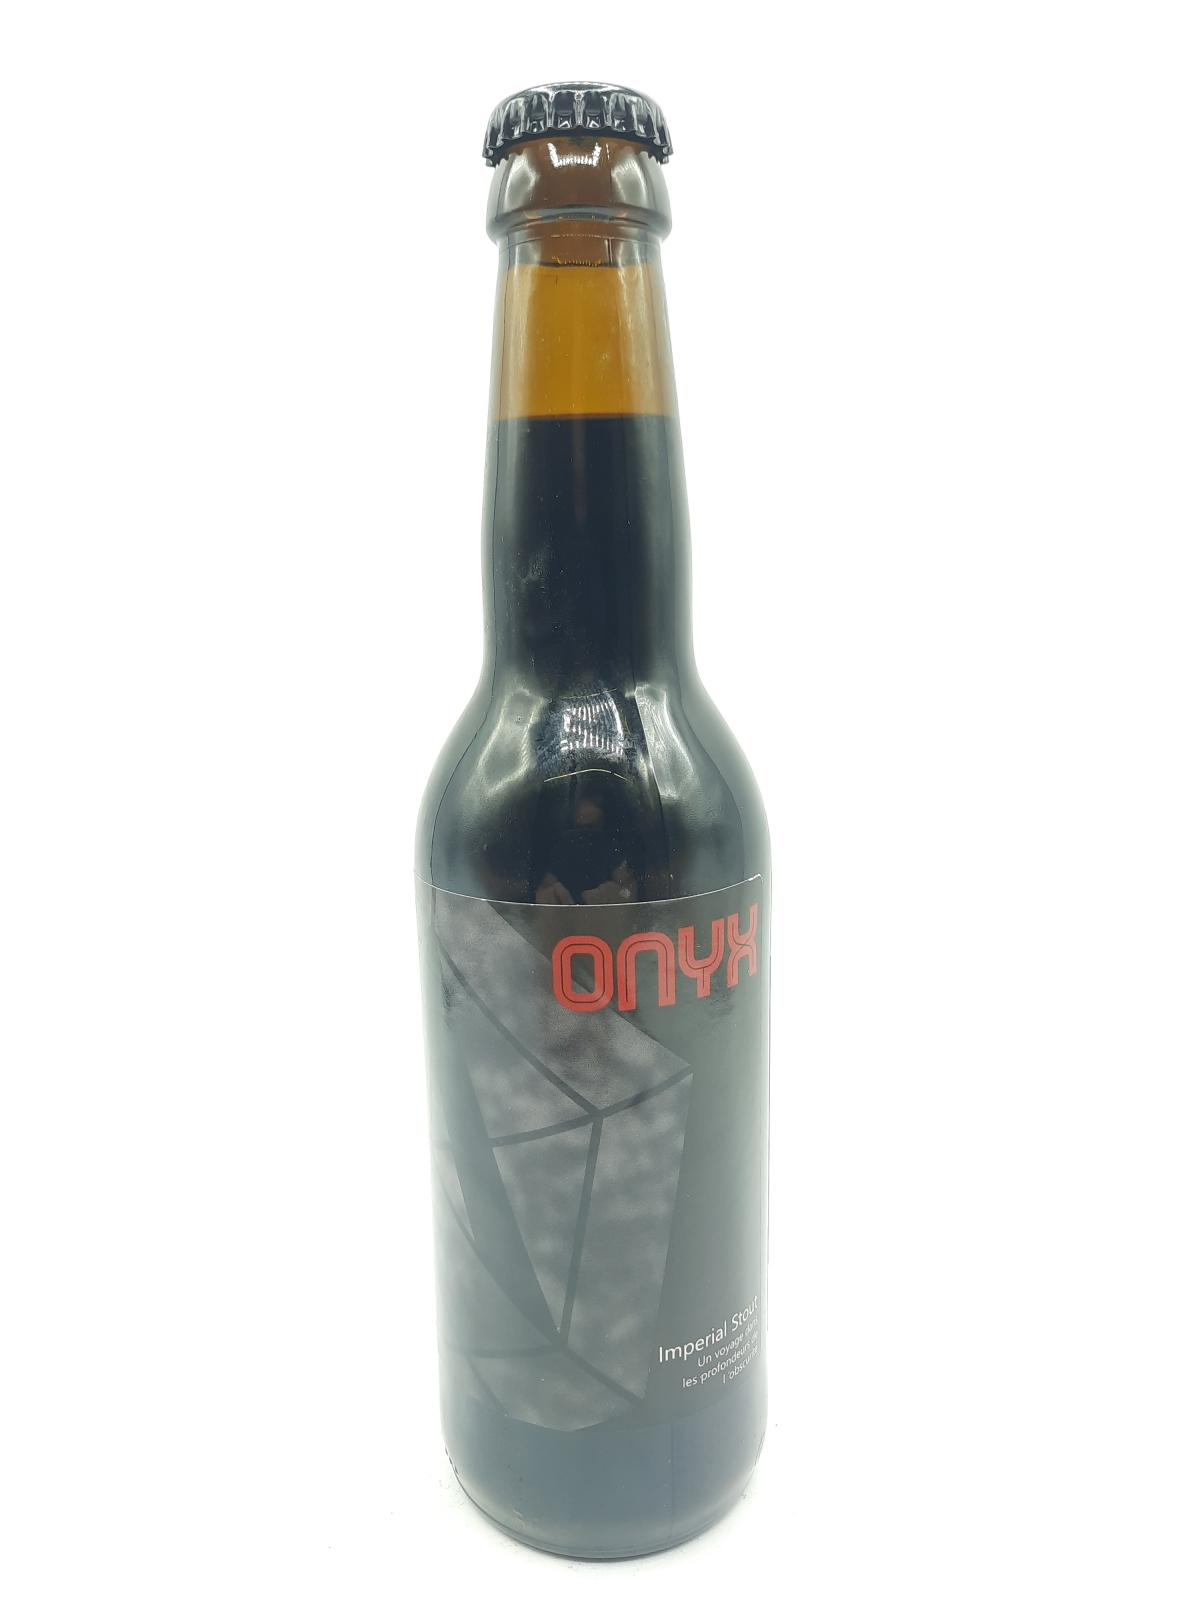 Image Onyx Imperial Stout